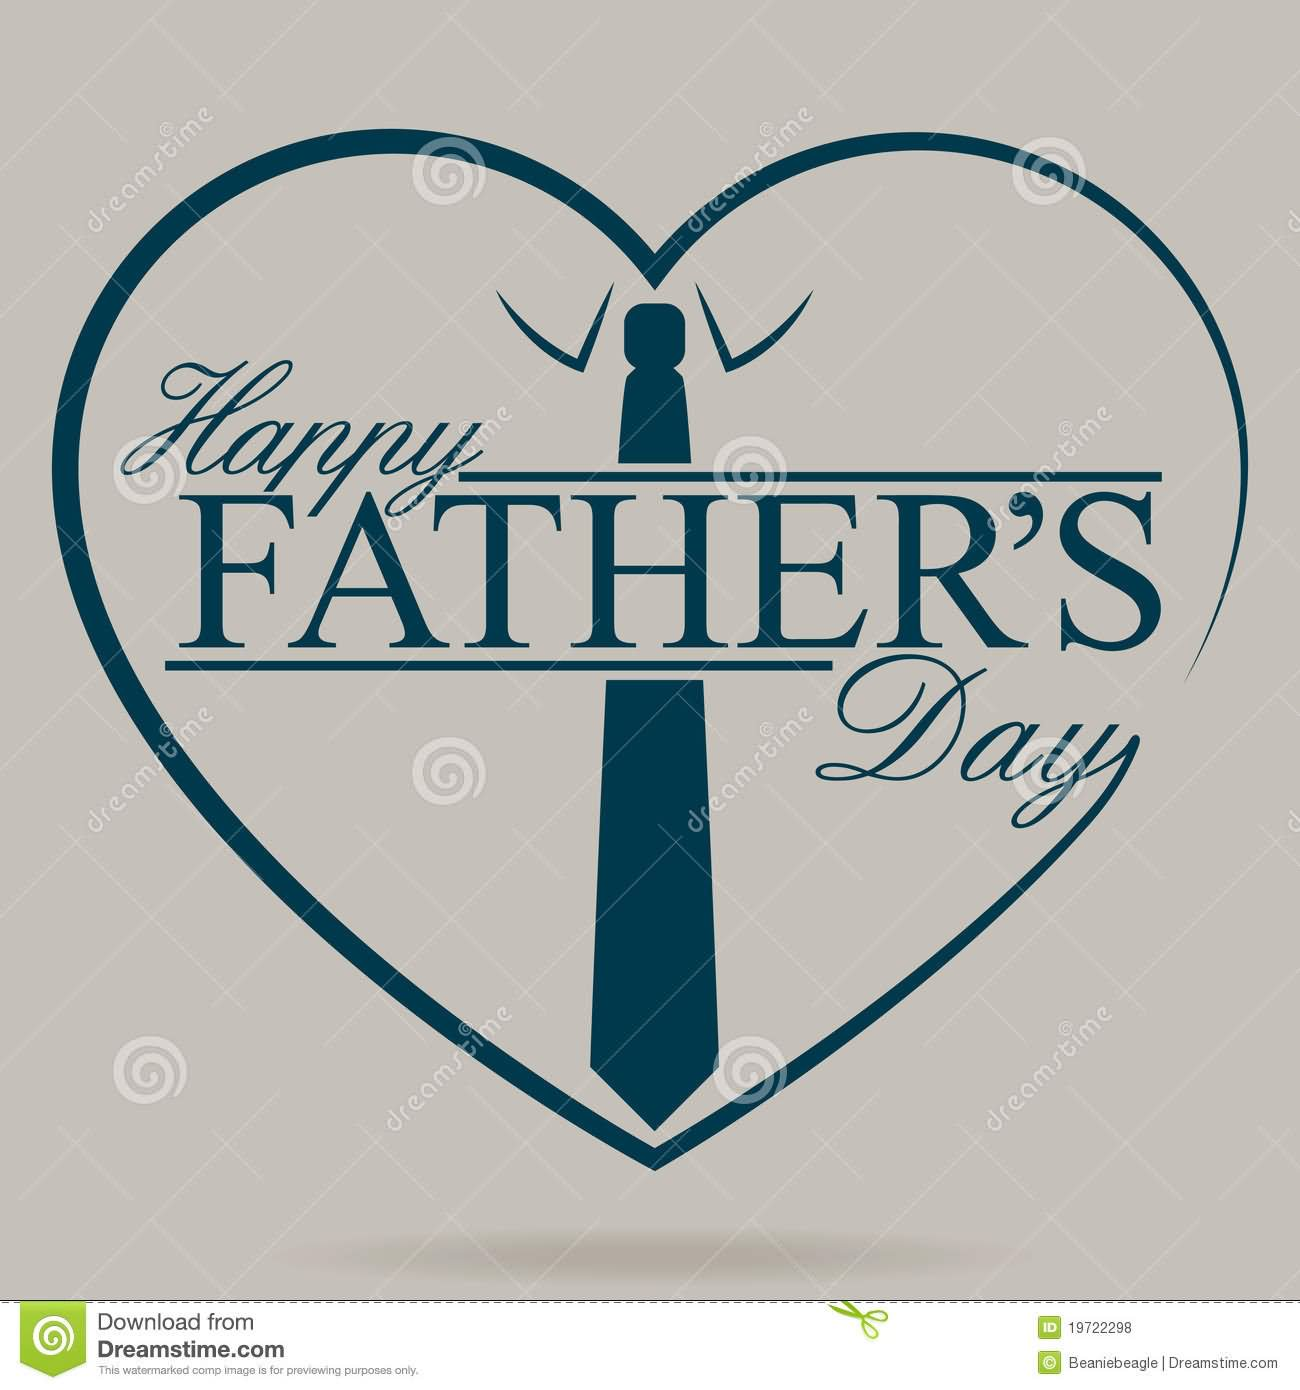 father's day images - 800×800